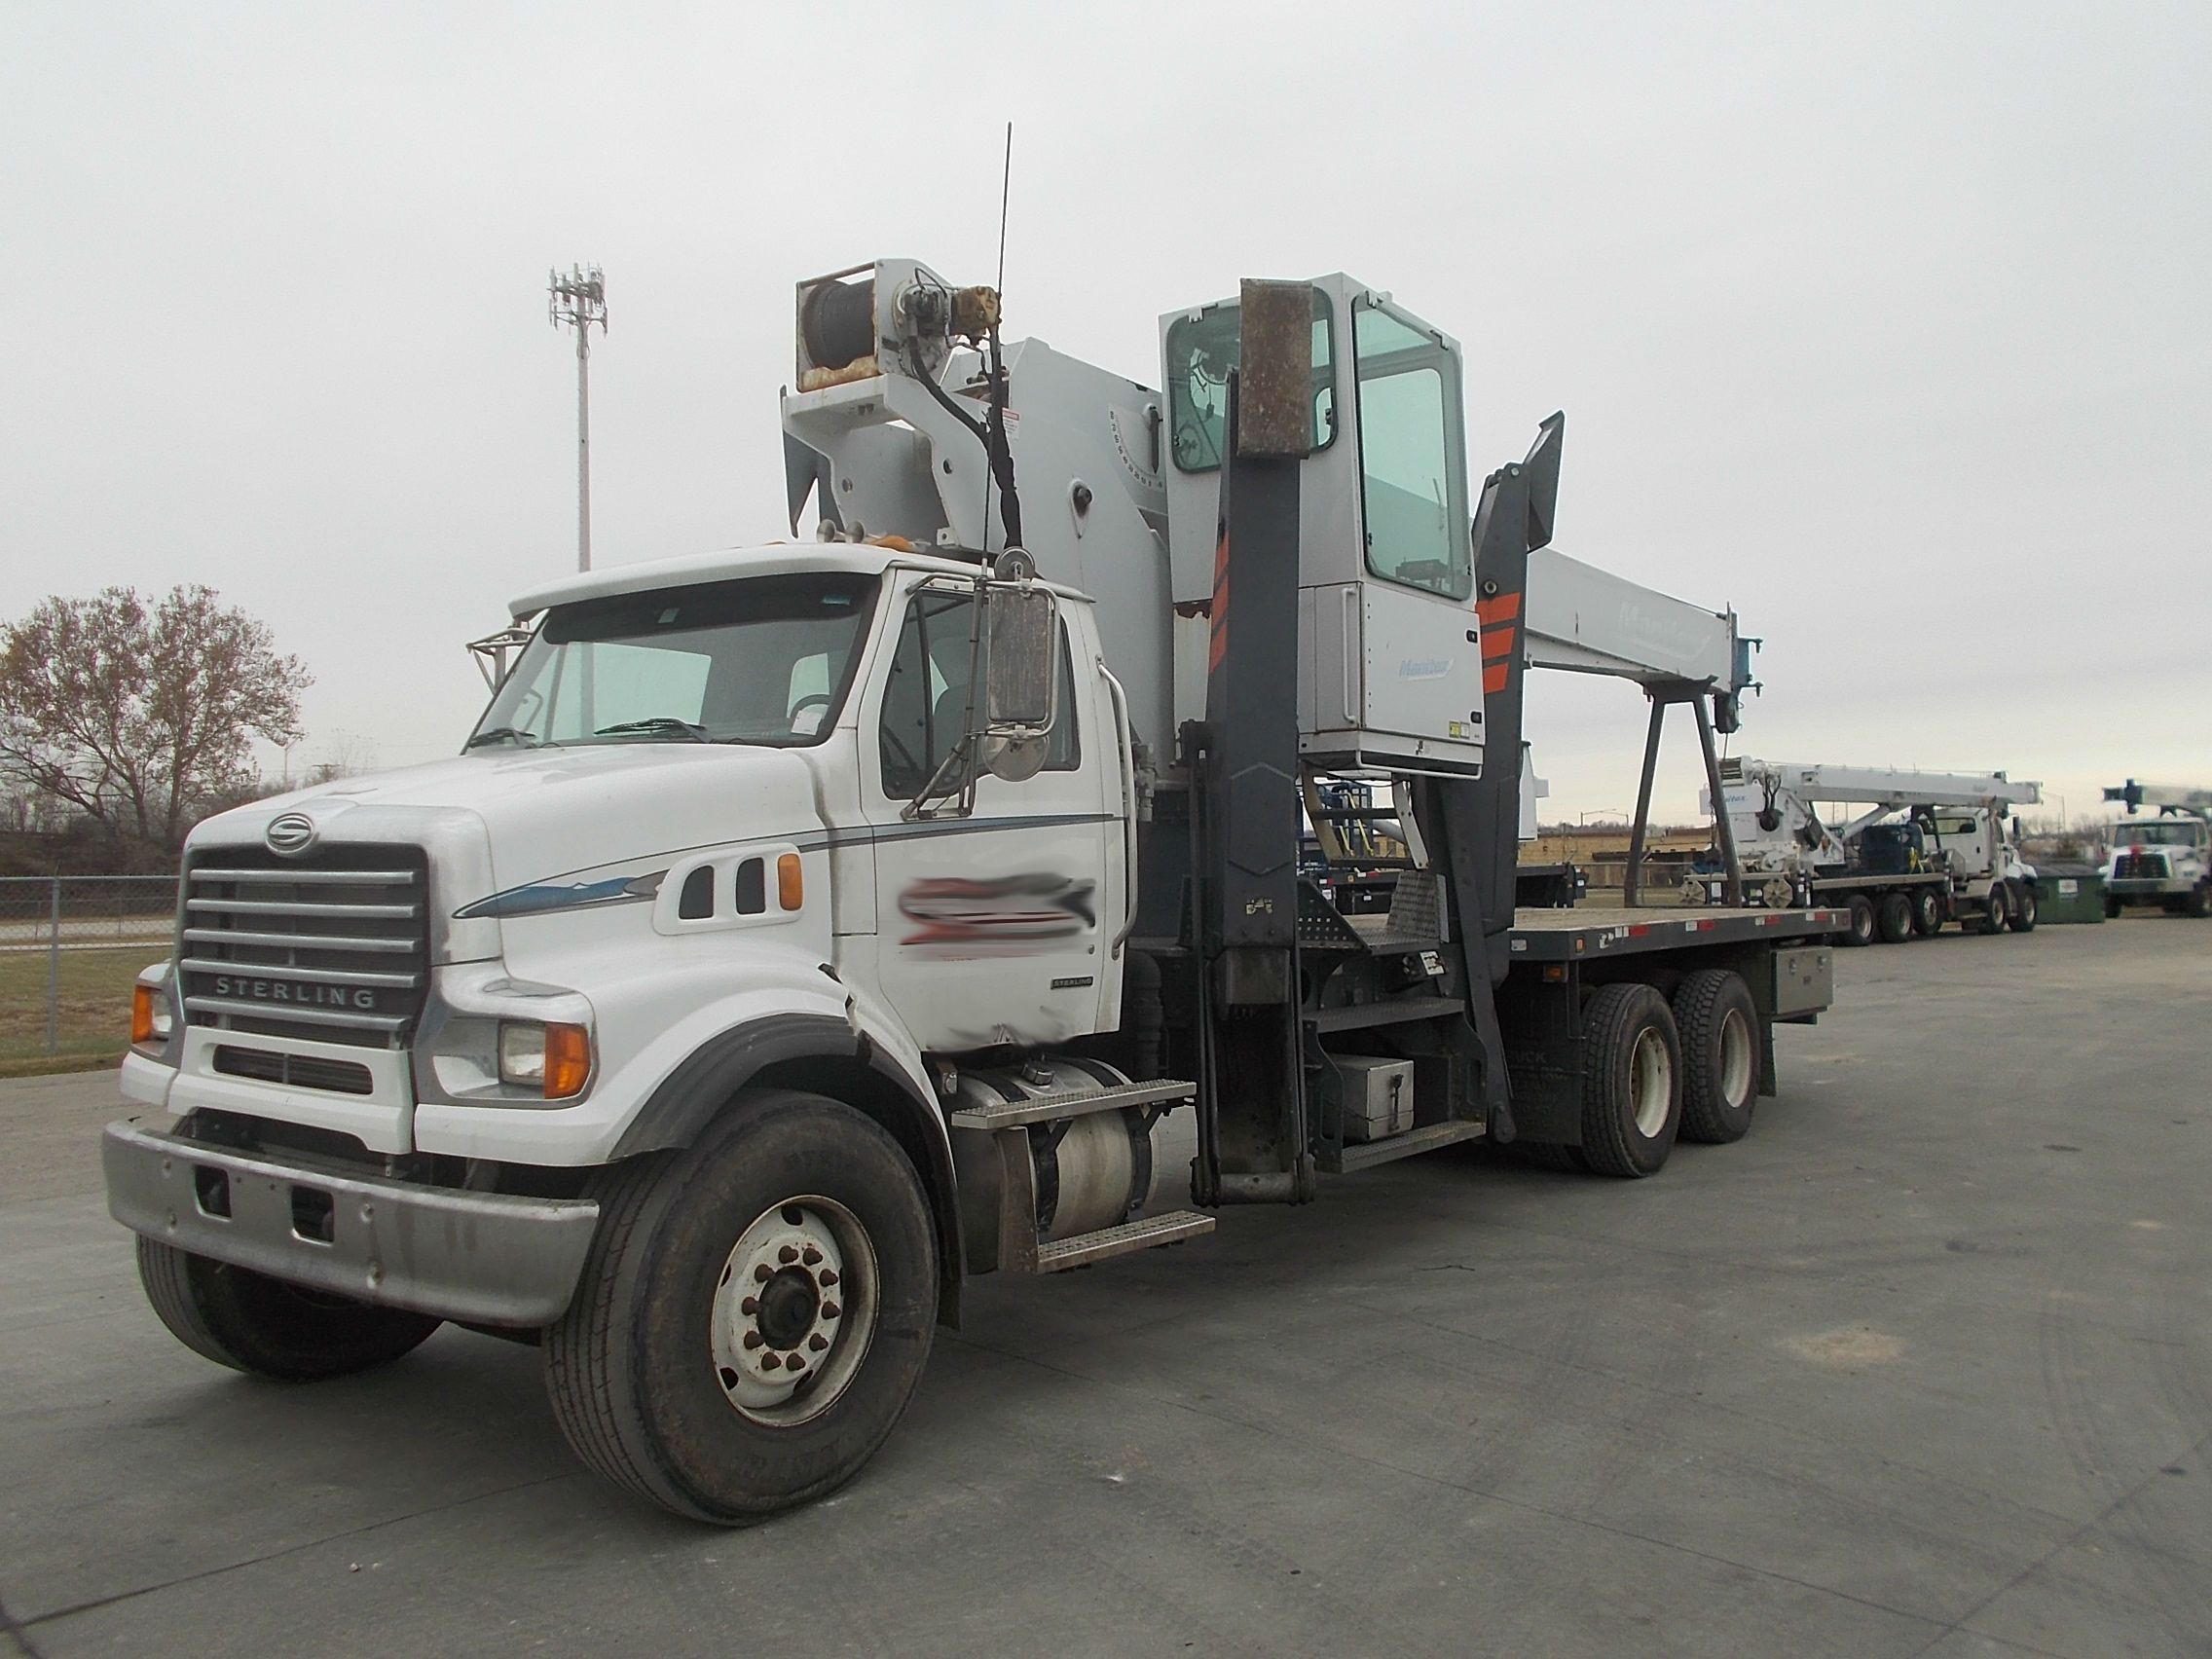 Used manitex 102sx crane on a 2008 sterling lt7501 boom truck for sale